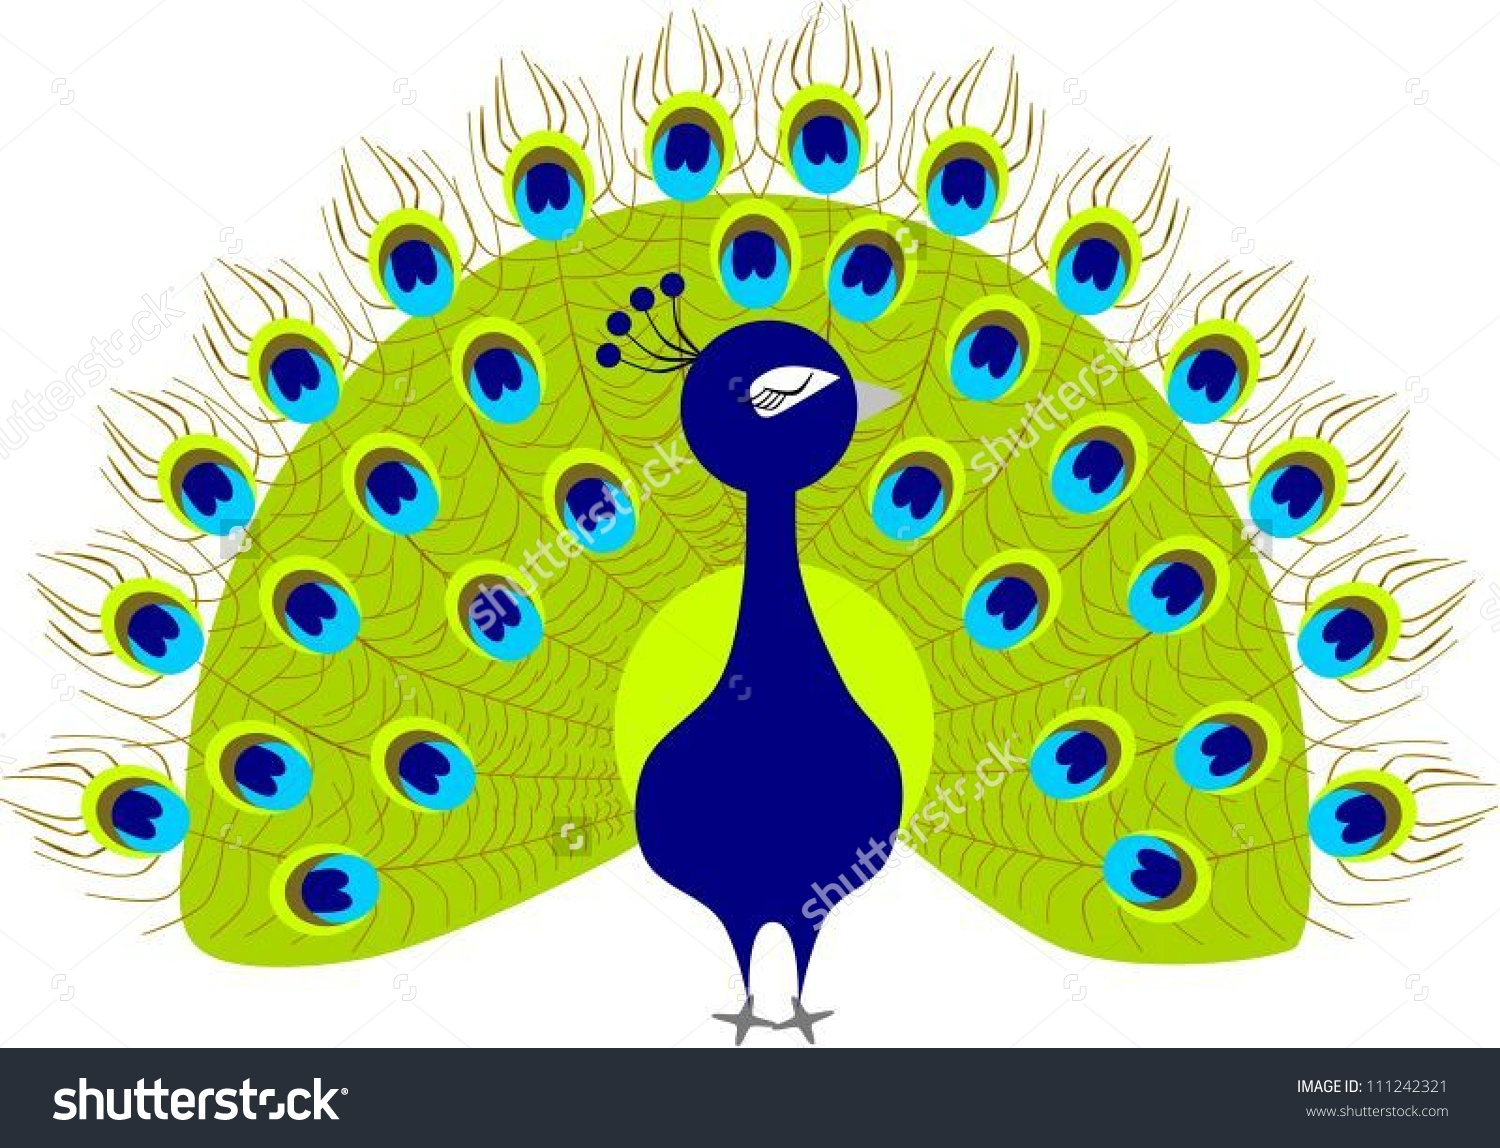 Peacock clipart #4, Download drawings